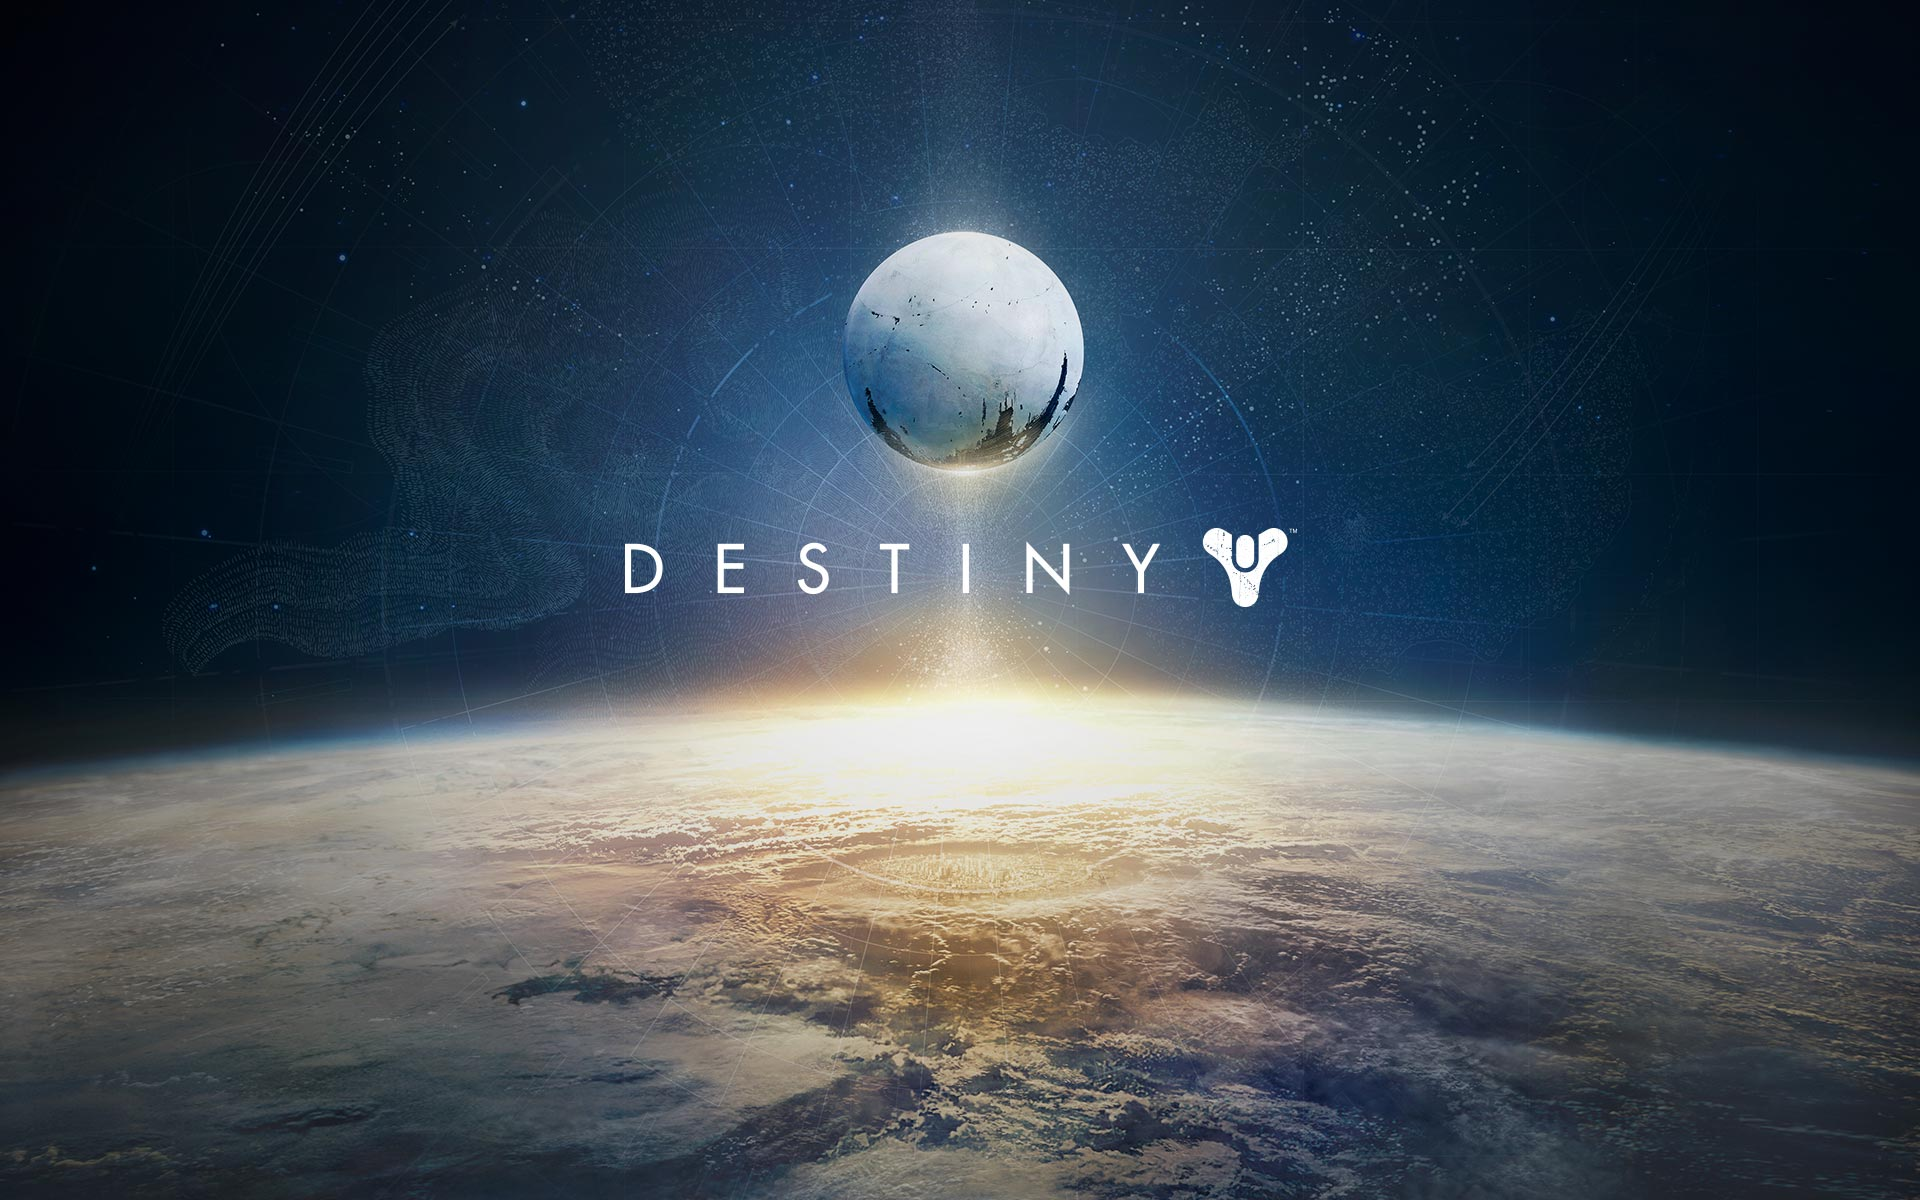 Destiny 2 Expansion Pass Hints at Both DLC Storylines